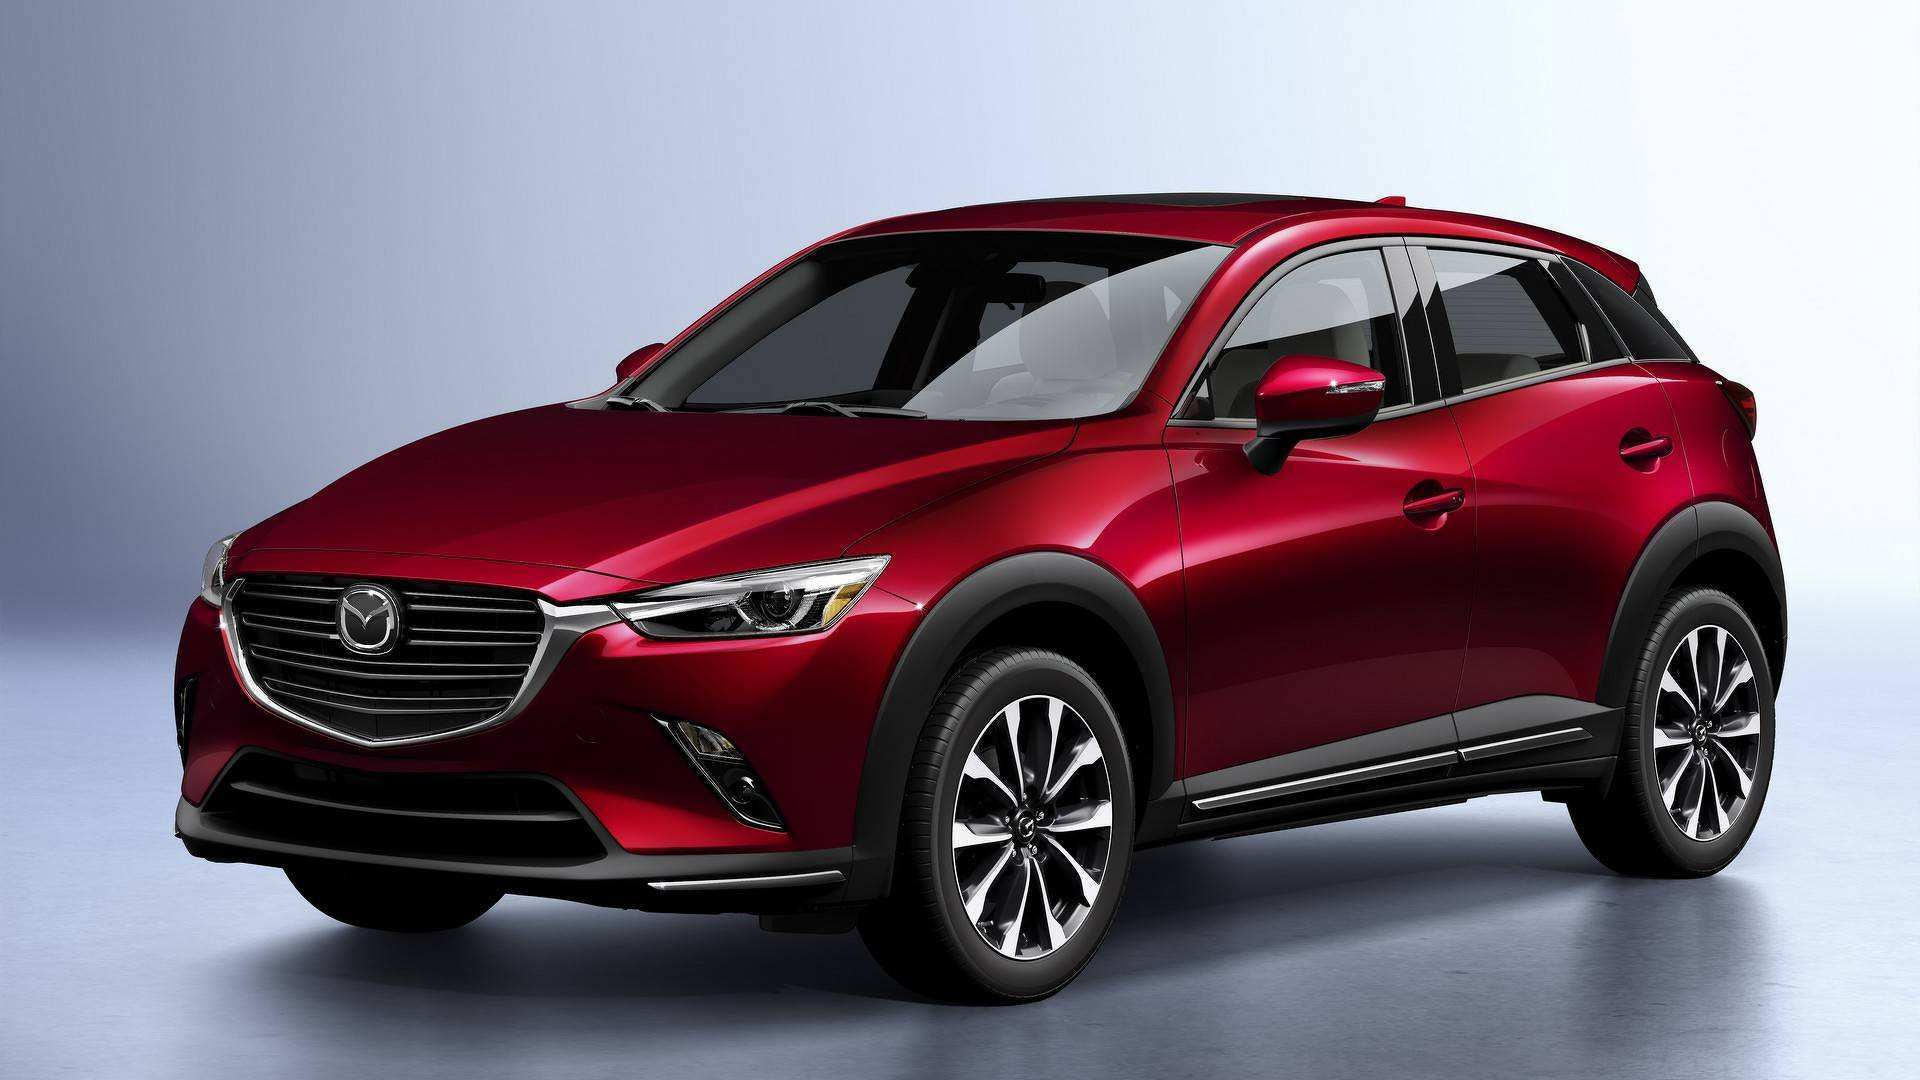 84 A 2019 Mazda Cx 9 Rumors Spy Shoot